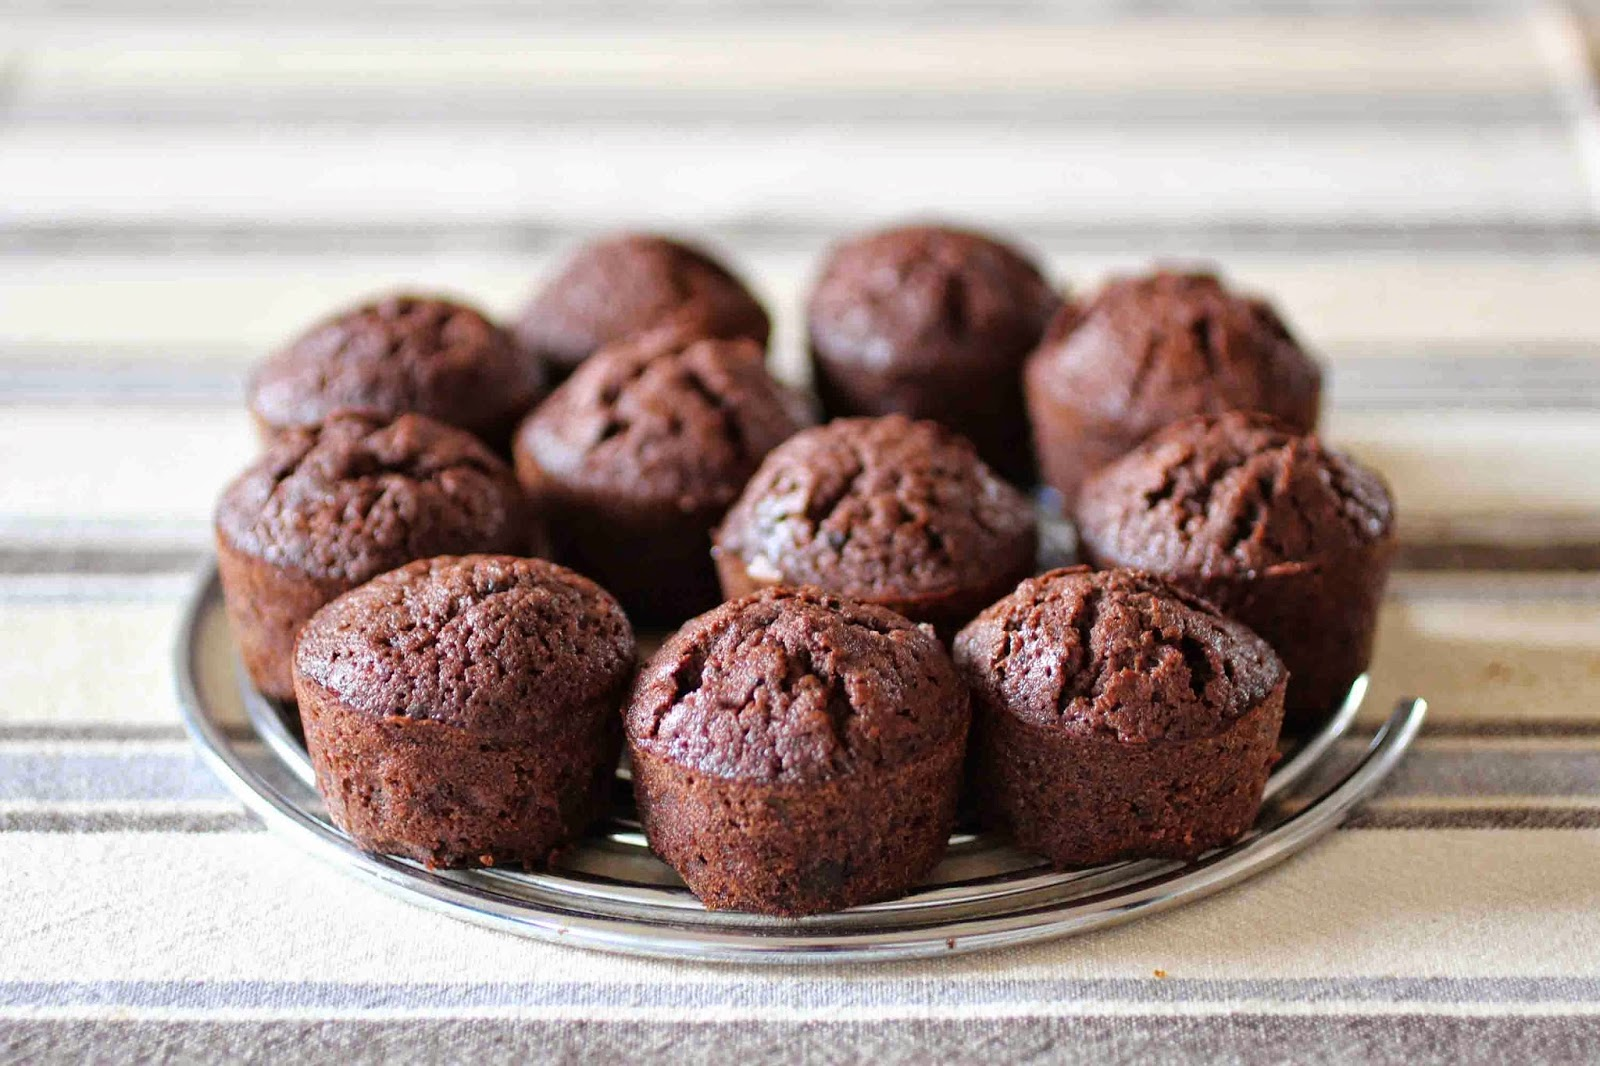 http://camilleenchocolat.blogspot.fr/2014/12/les-ptits-muffins-tout-chocolat.html